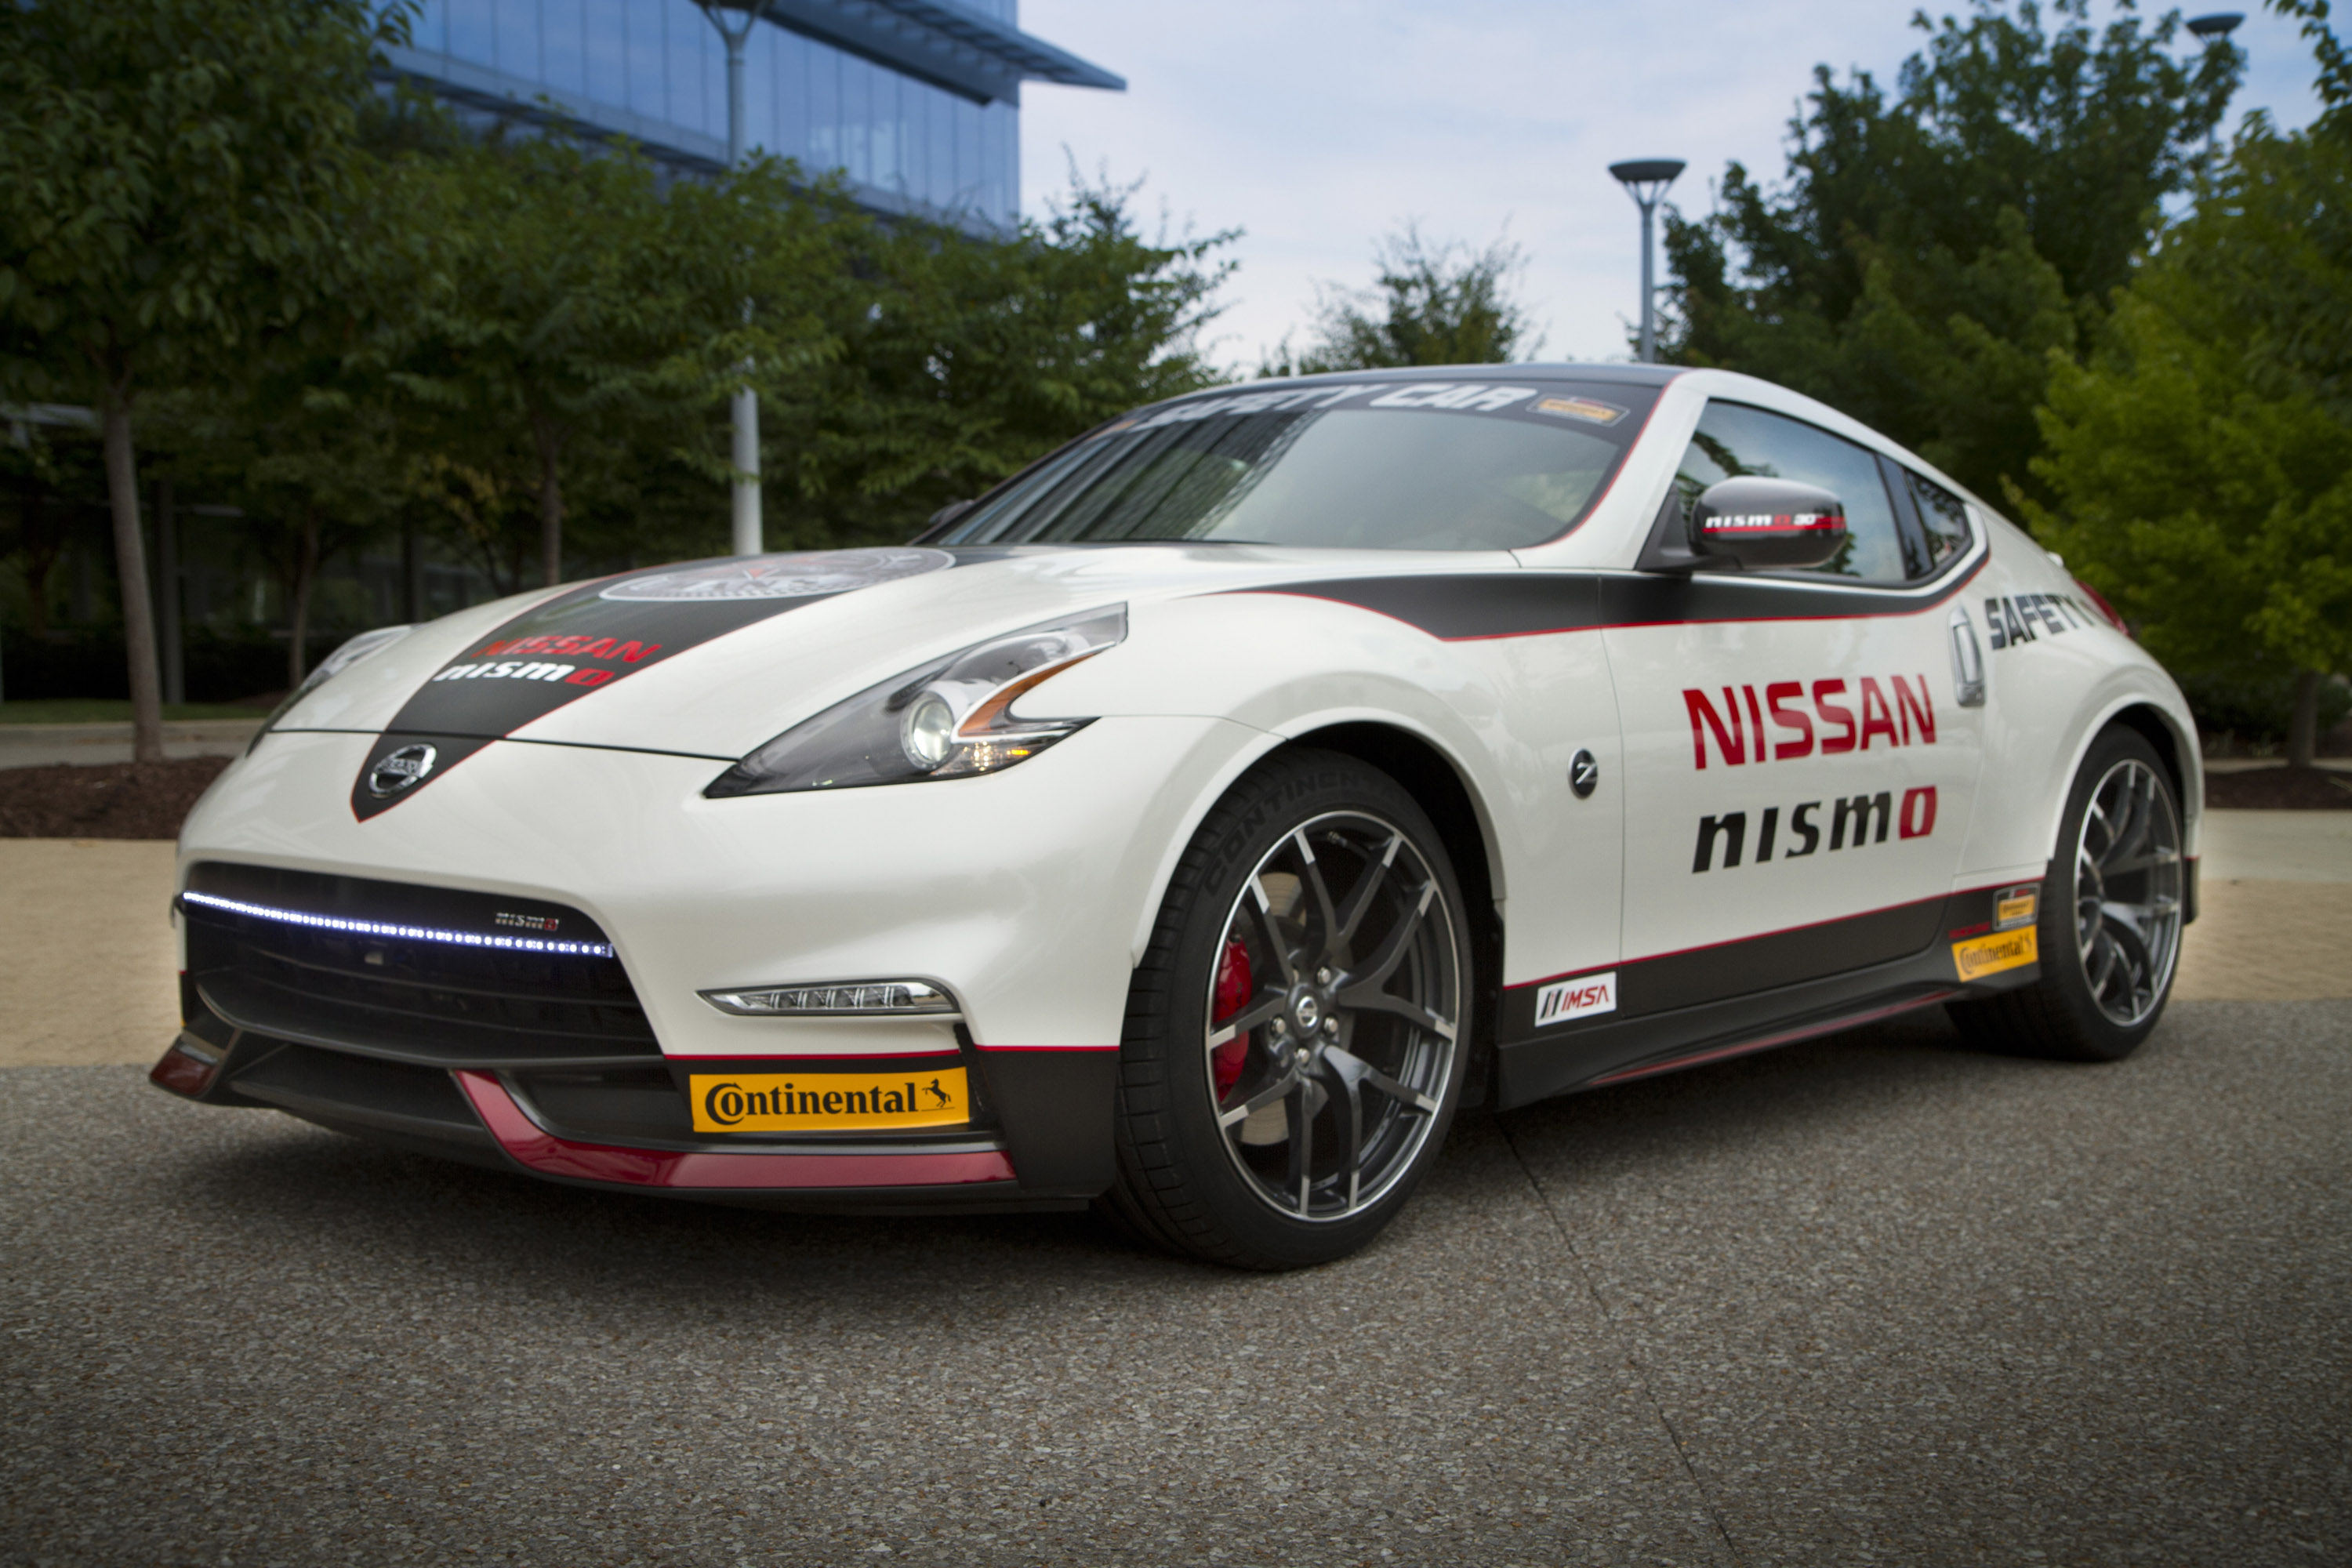 2015 gt r nismo and 370z nismo safety car on display at sema show. Black Bedroom Furniture Sets. Home Design Ideas